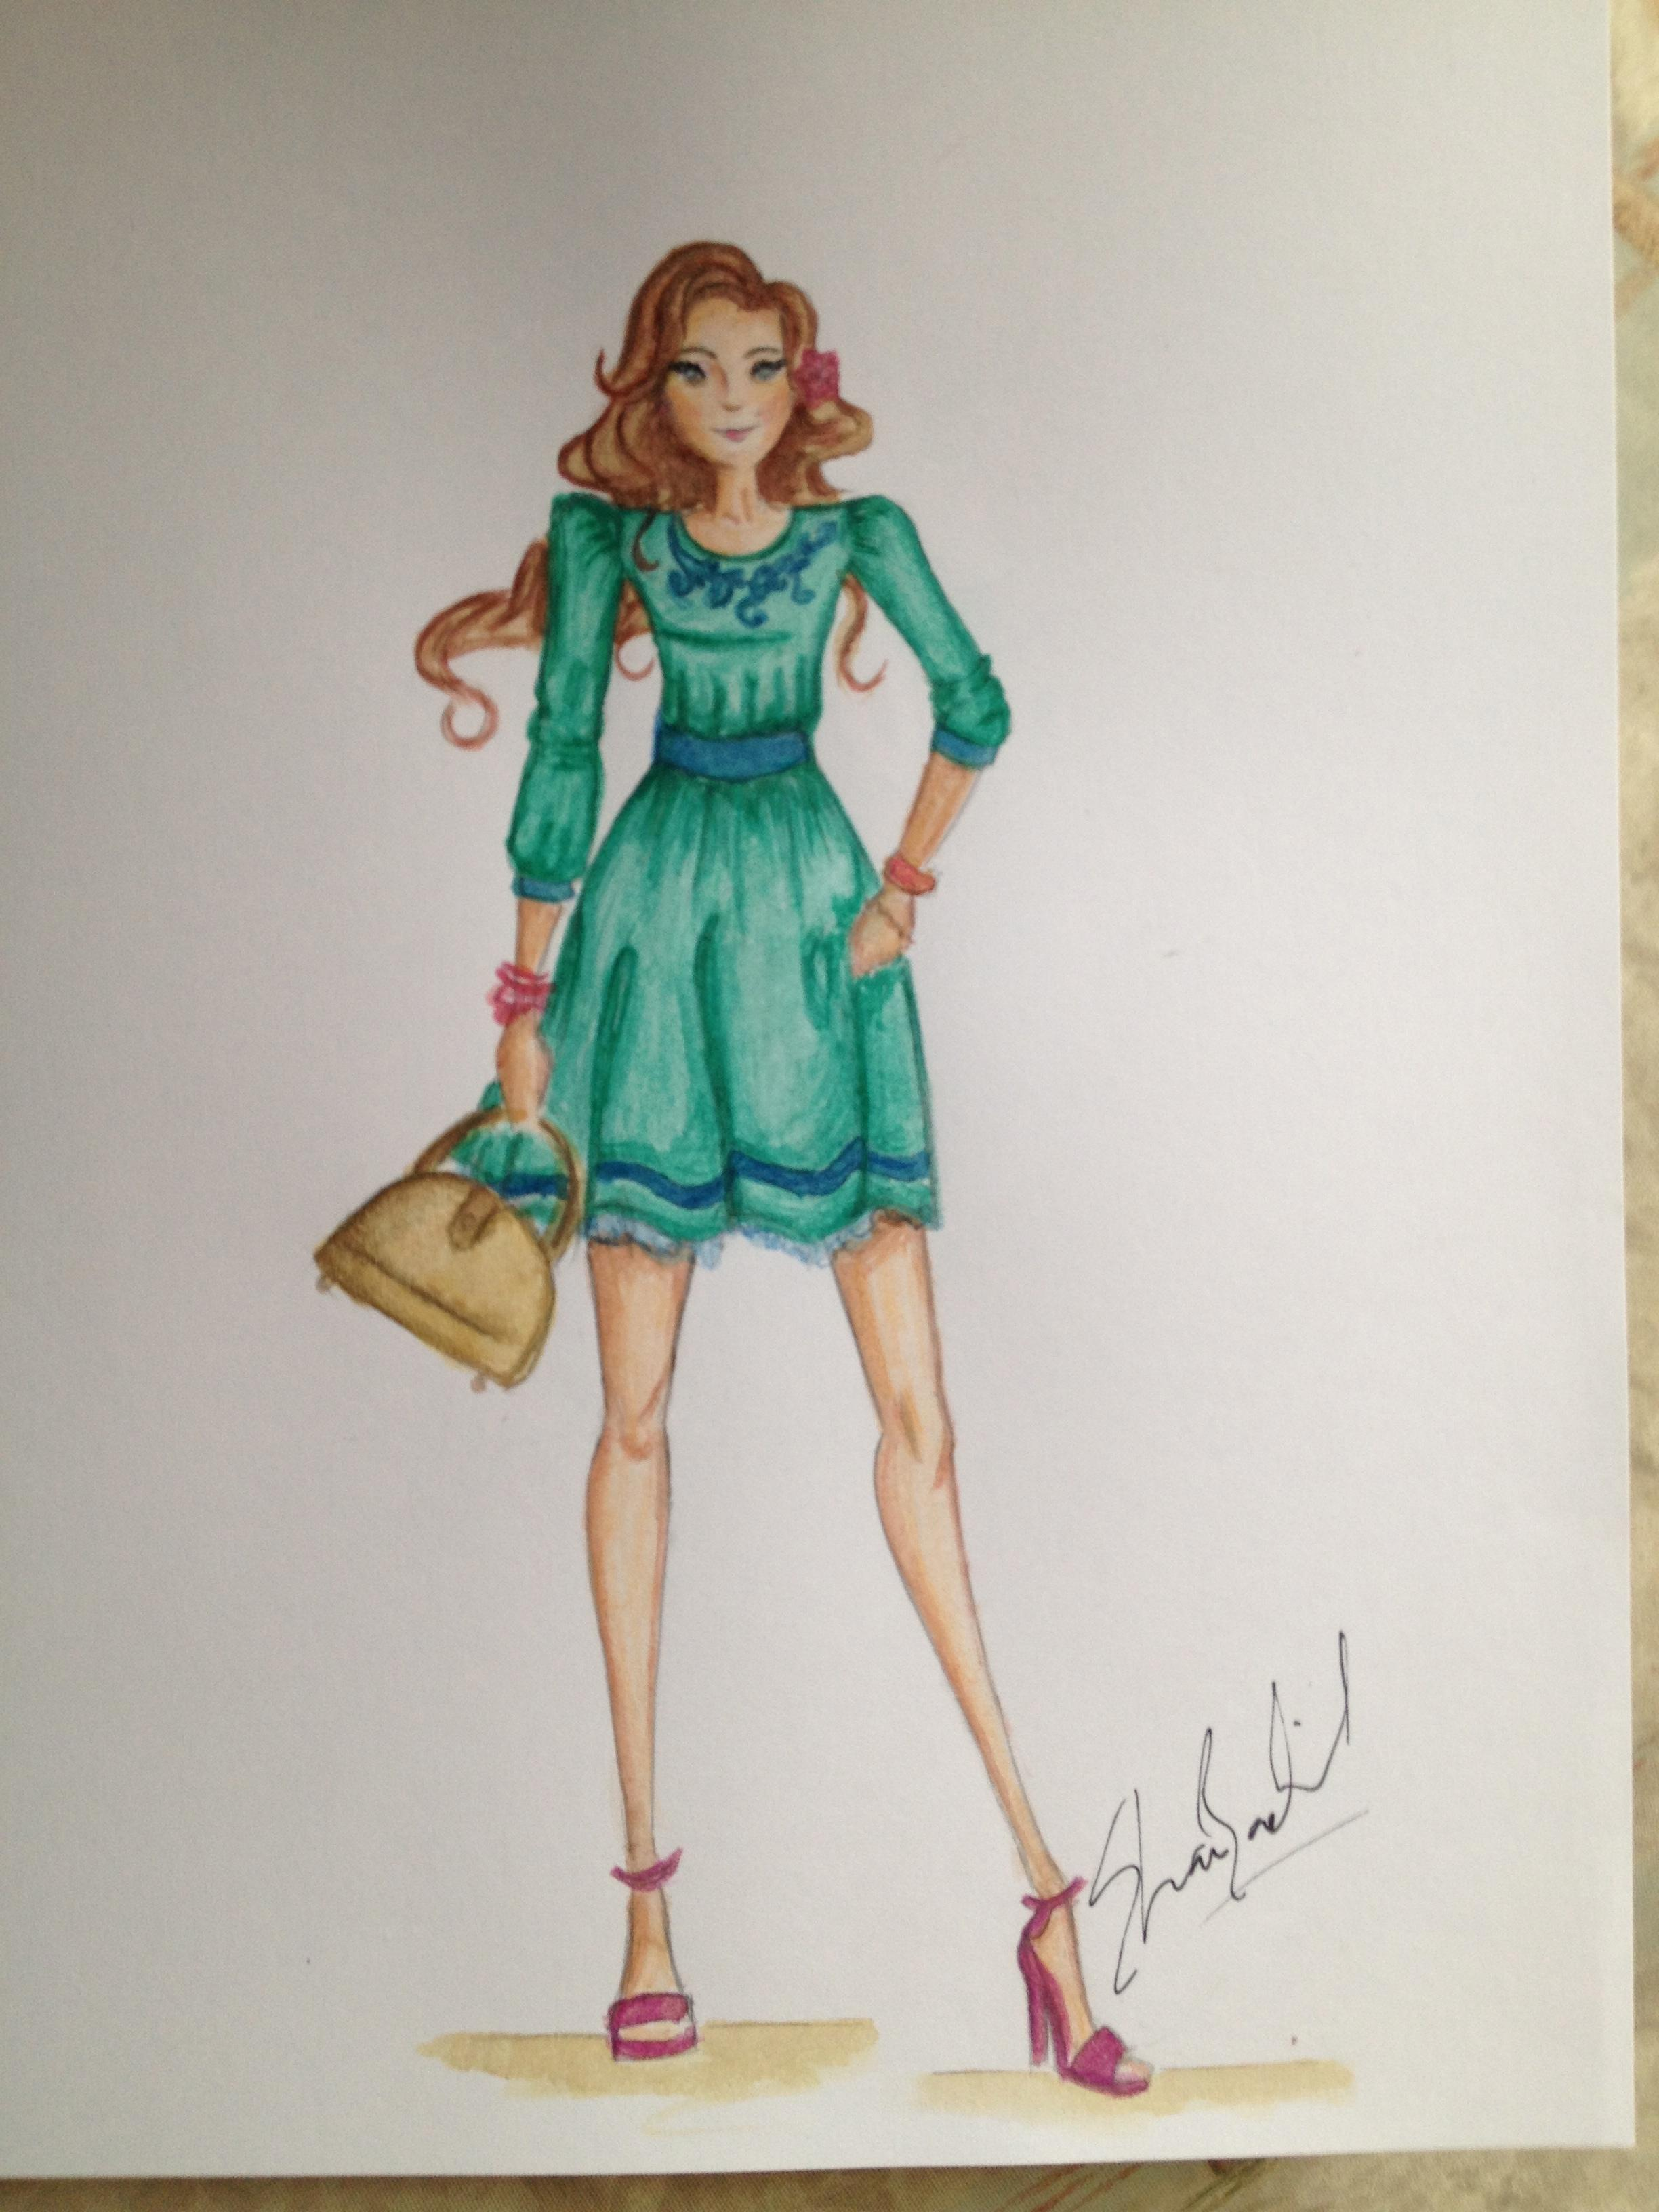 My Illustrations From Mannequin To Full Fashion Design Skillshare Projects